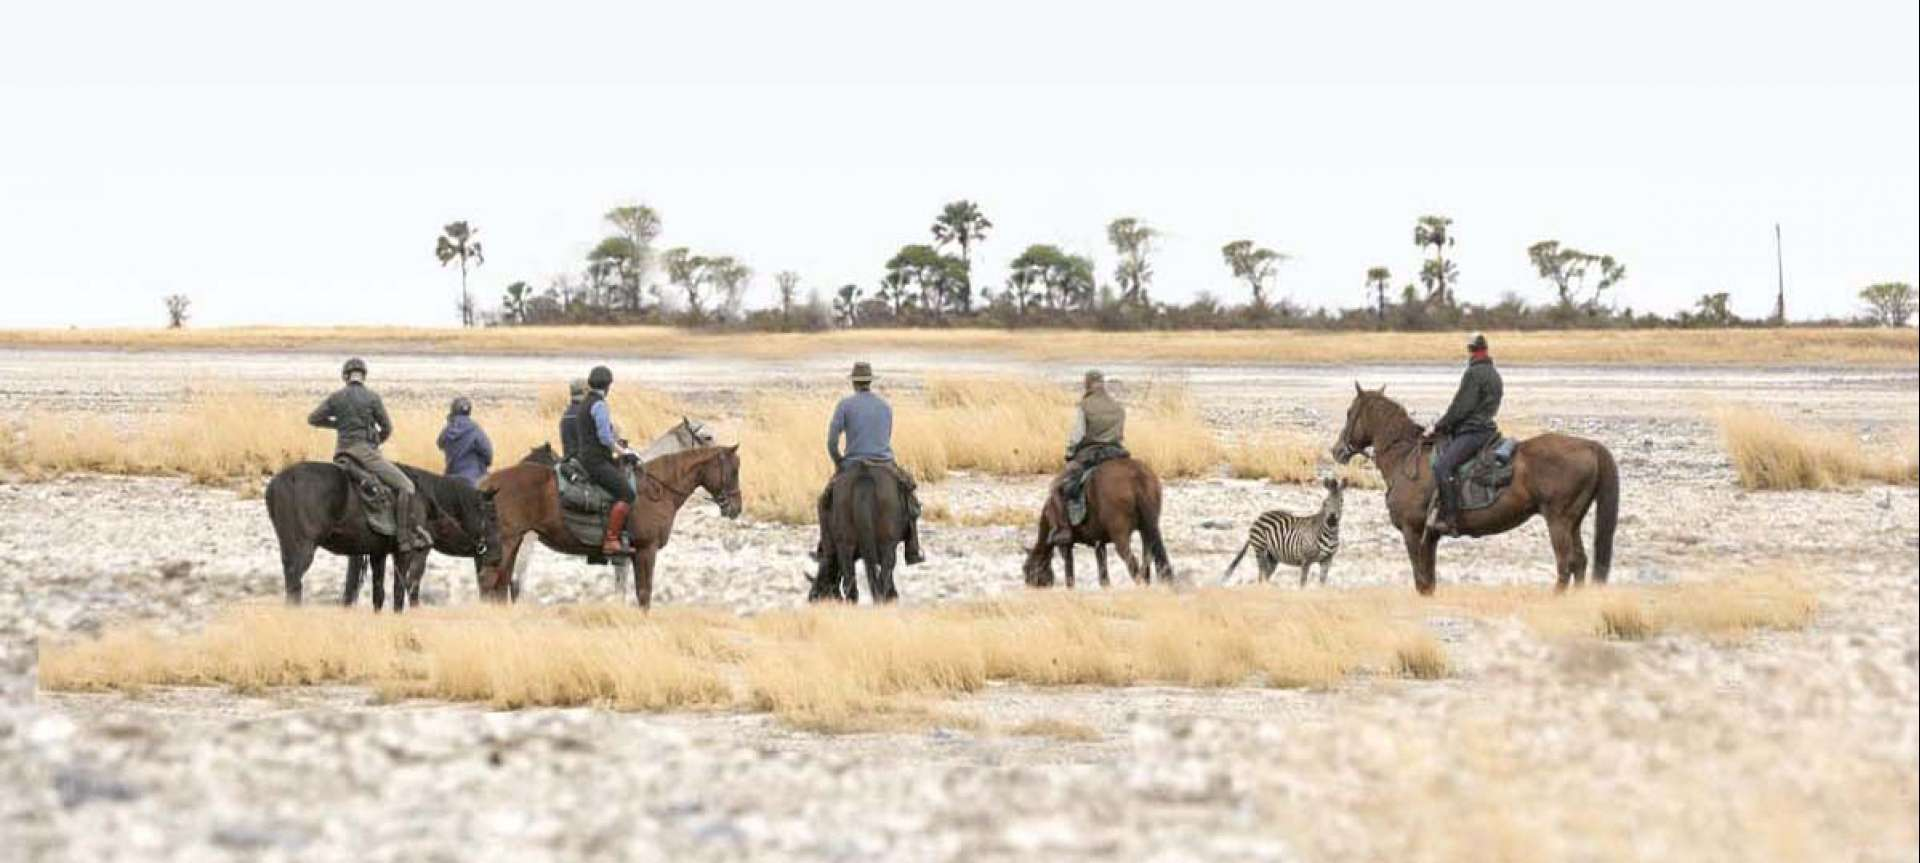 Horse riding expeditions are a great way to view wildlife